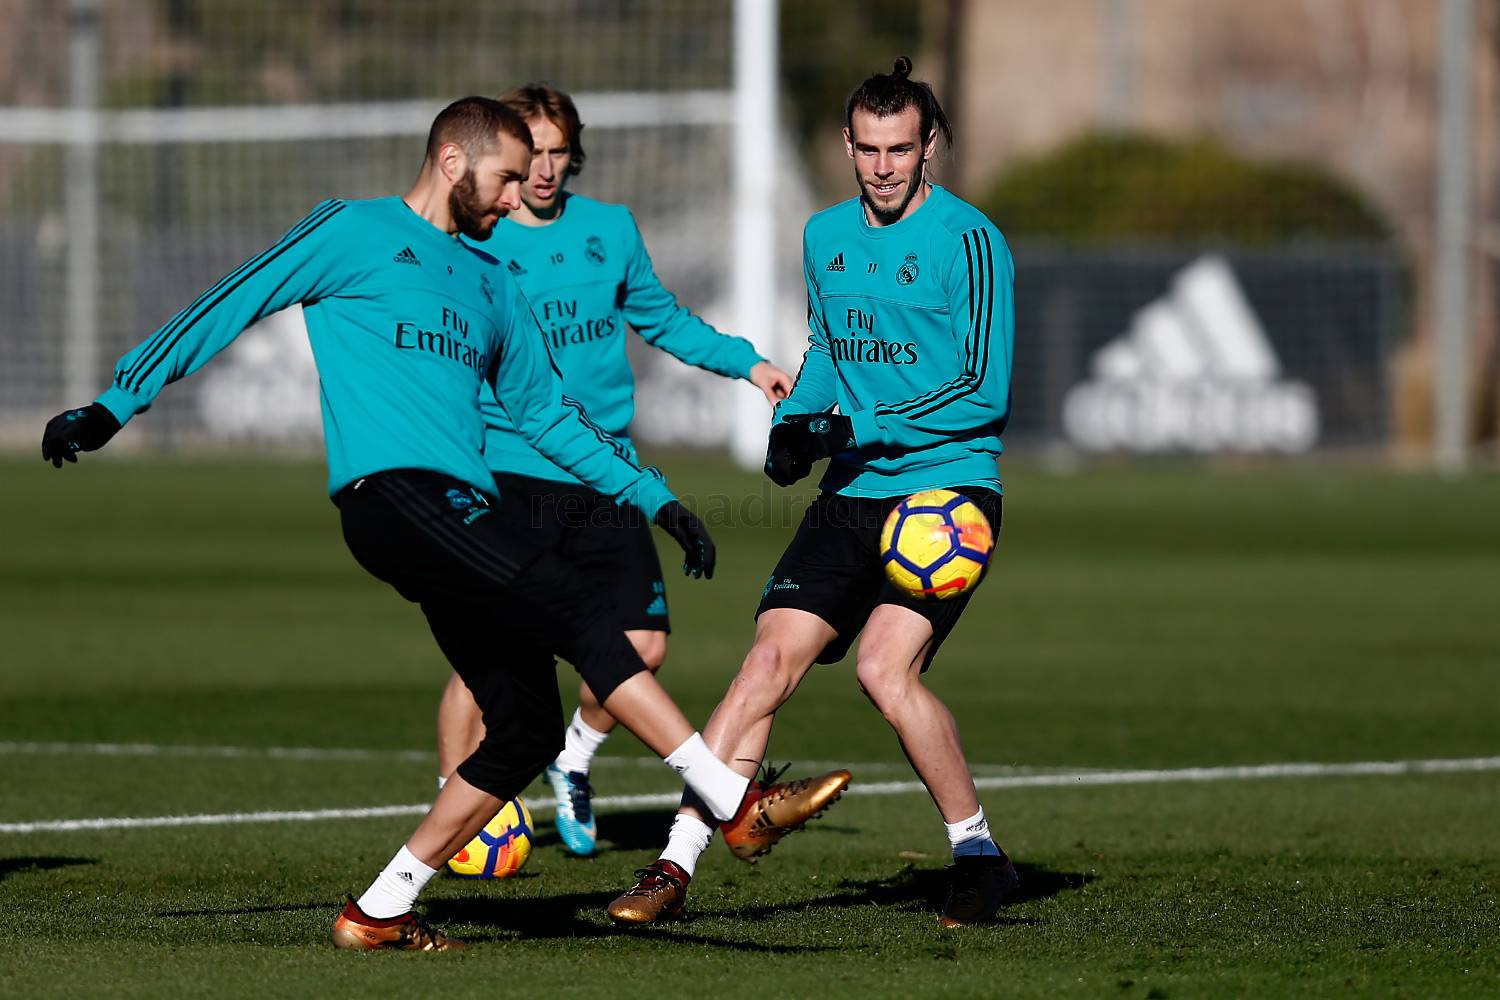 Real Madrid - Entrenamiento del Real Madrid - 21-12-2017